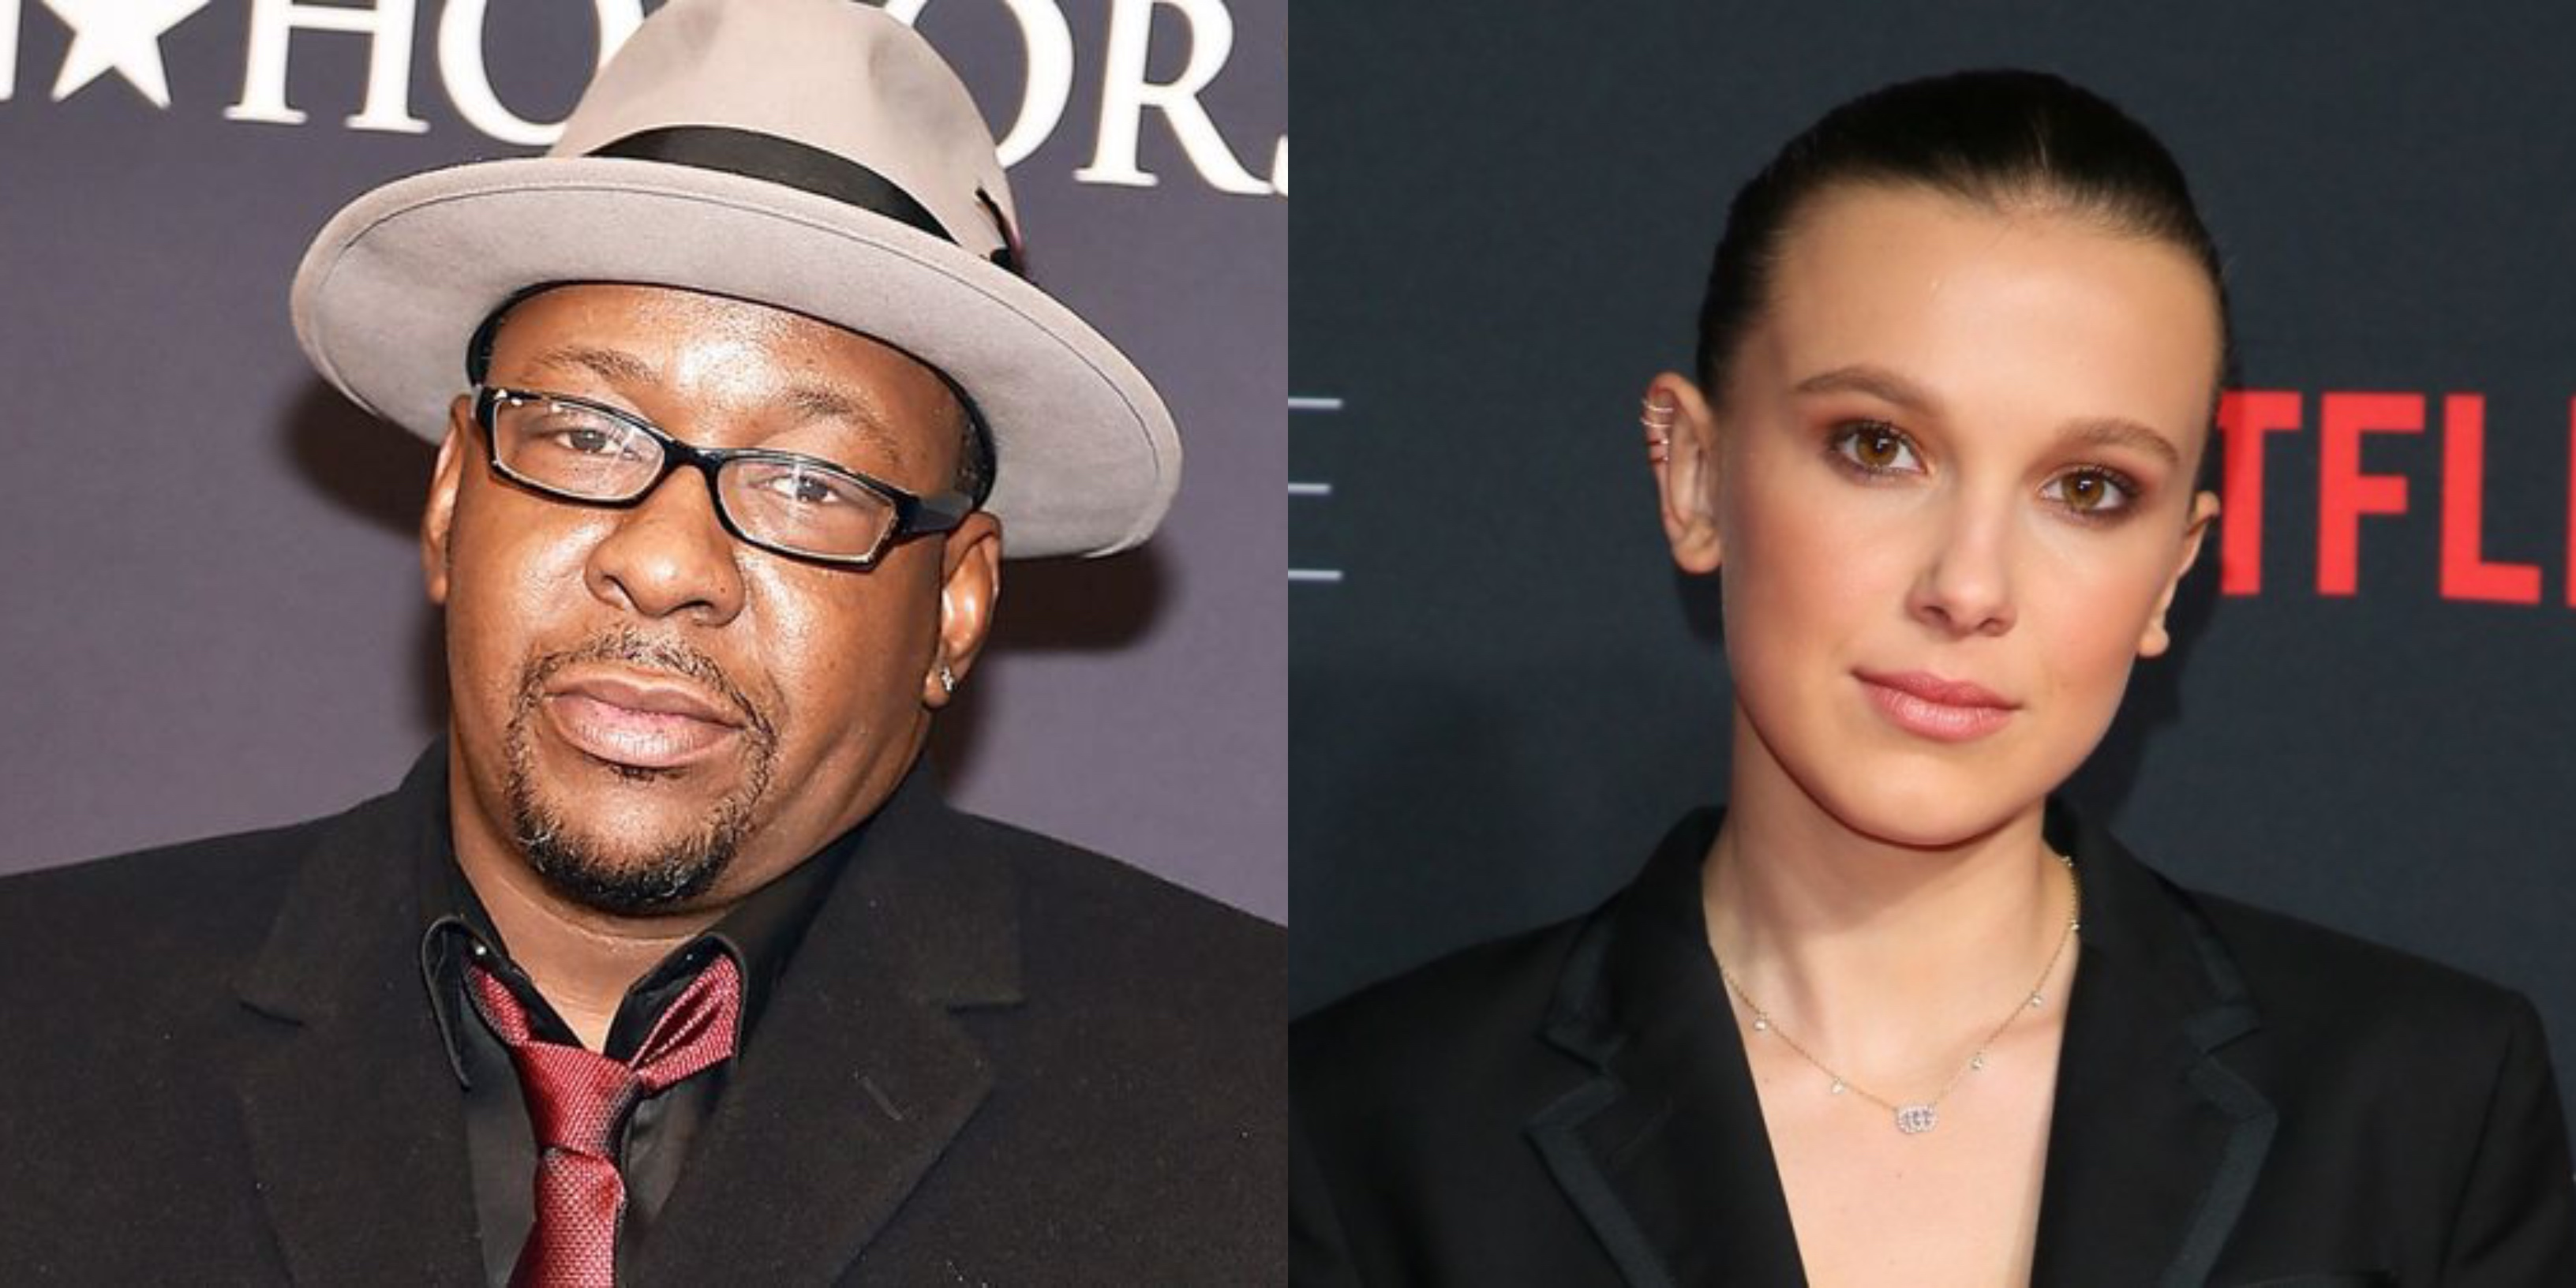 Bobby Brown meets Millie Bobby Brown at the Emmys